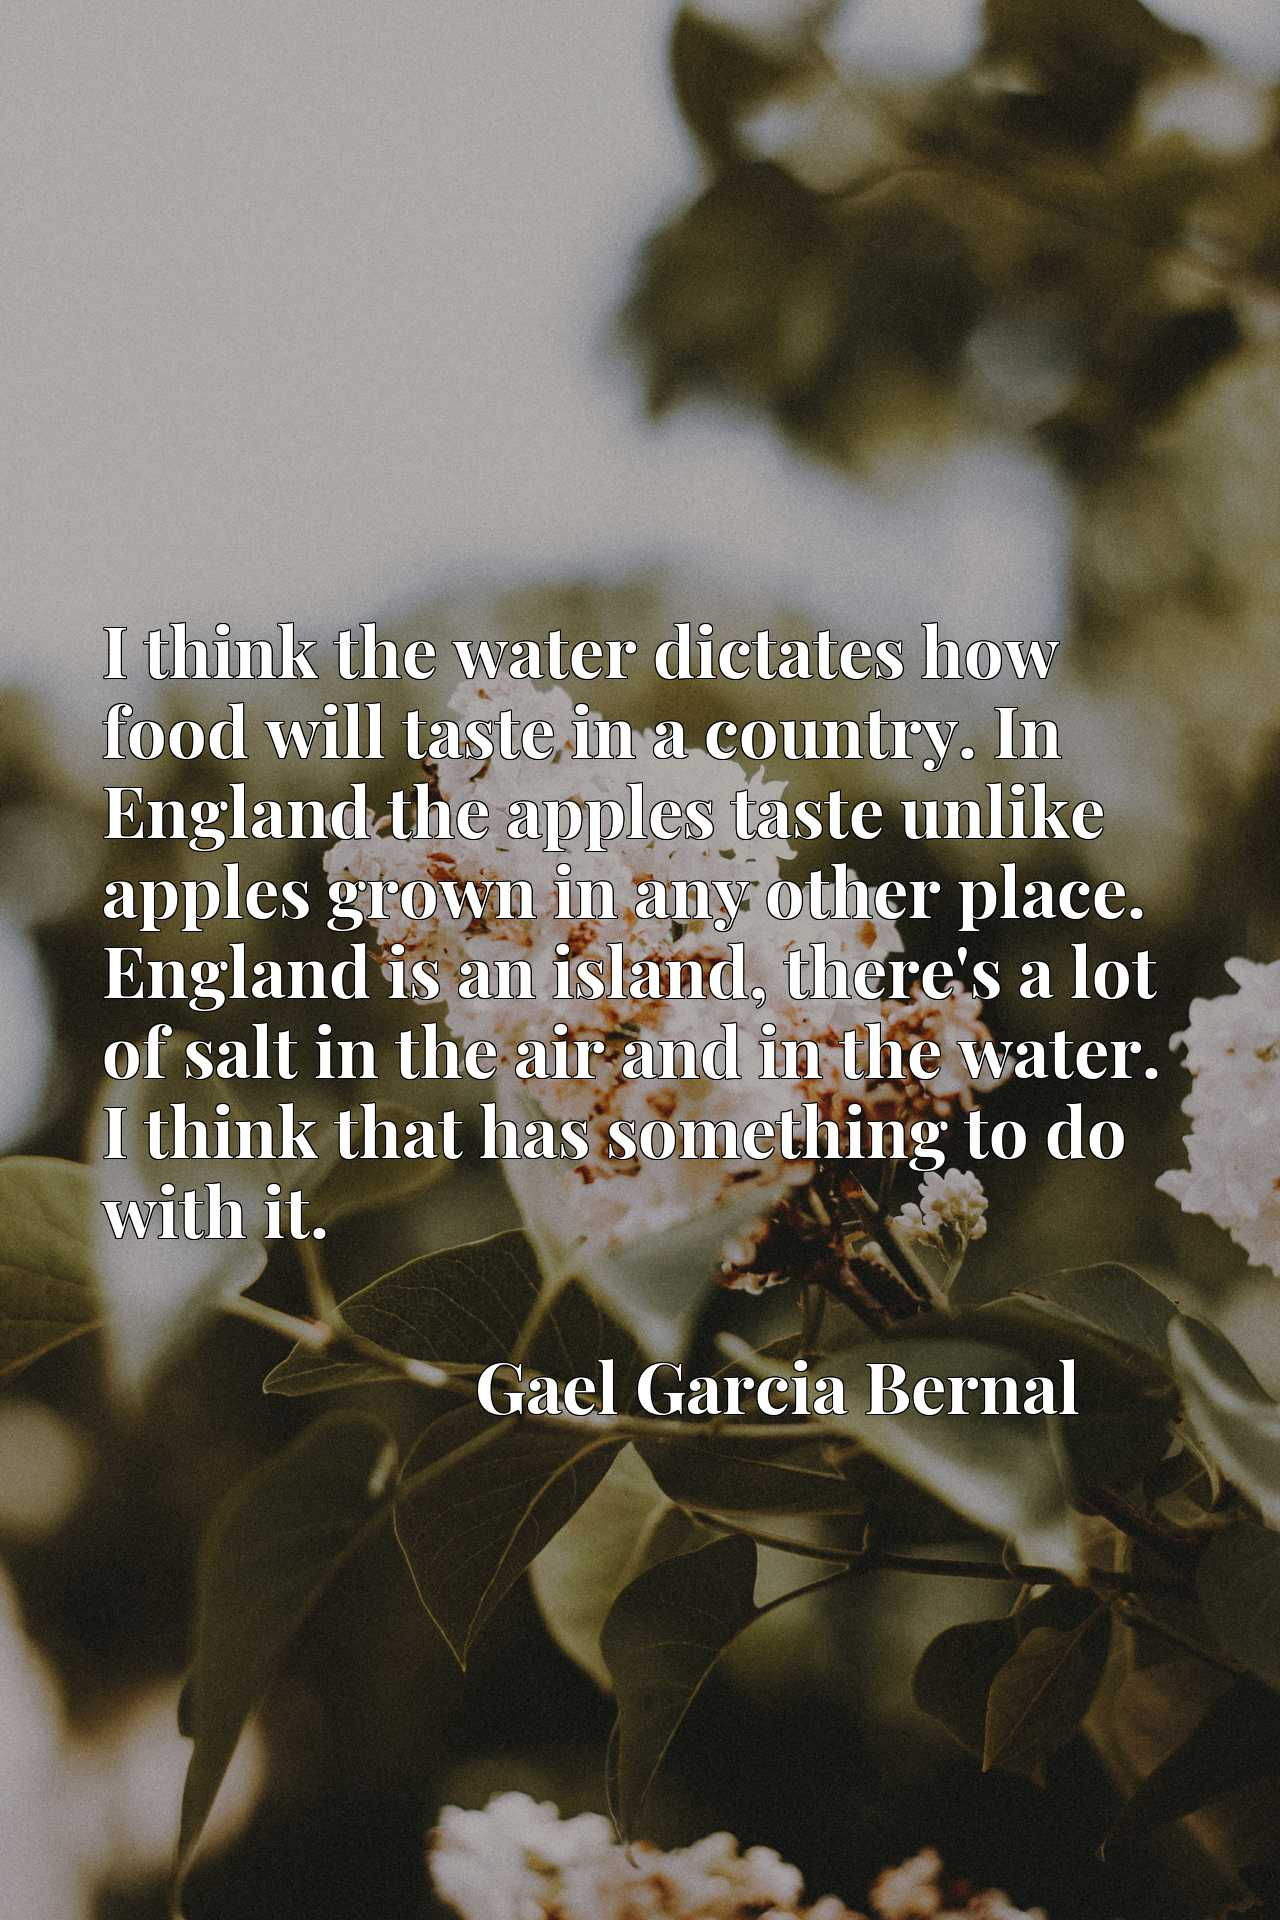 I think the water dictates how food will taste in a country. In England the apples taste unlike apples grown in any other place. England is an island, there's a lot of salt in the air and in the water. I think that has something to do with it.